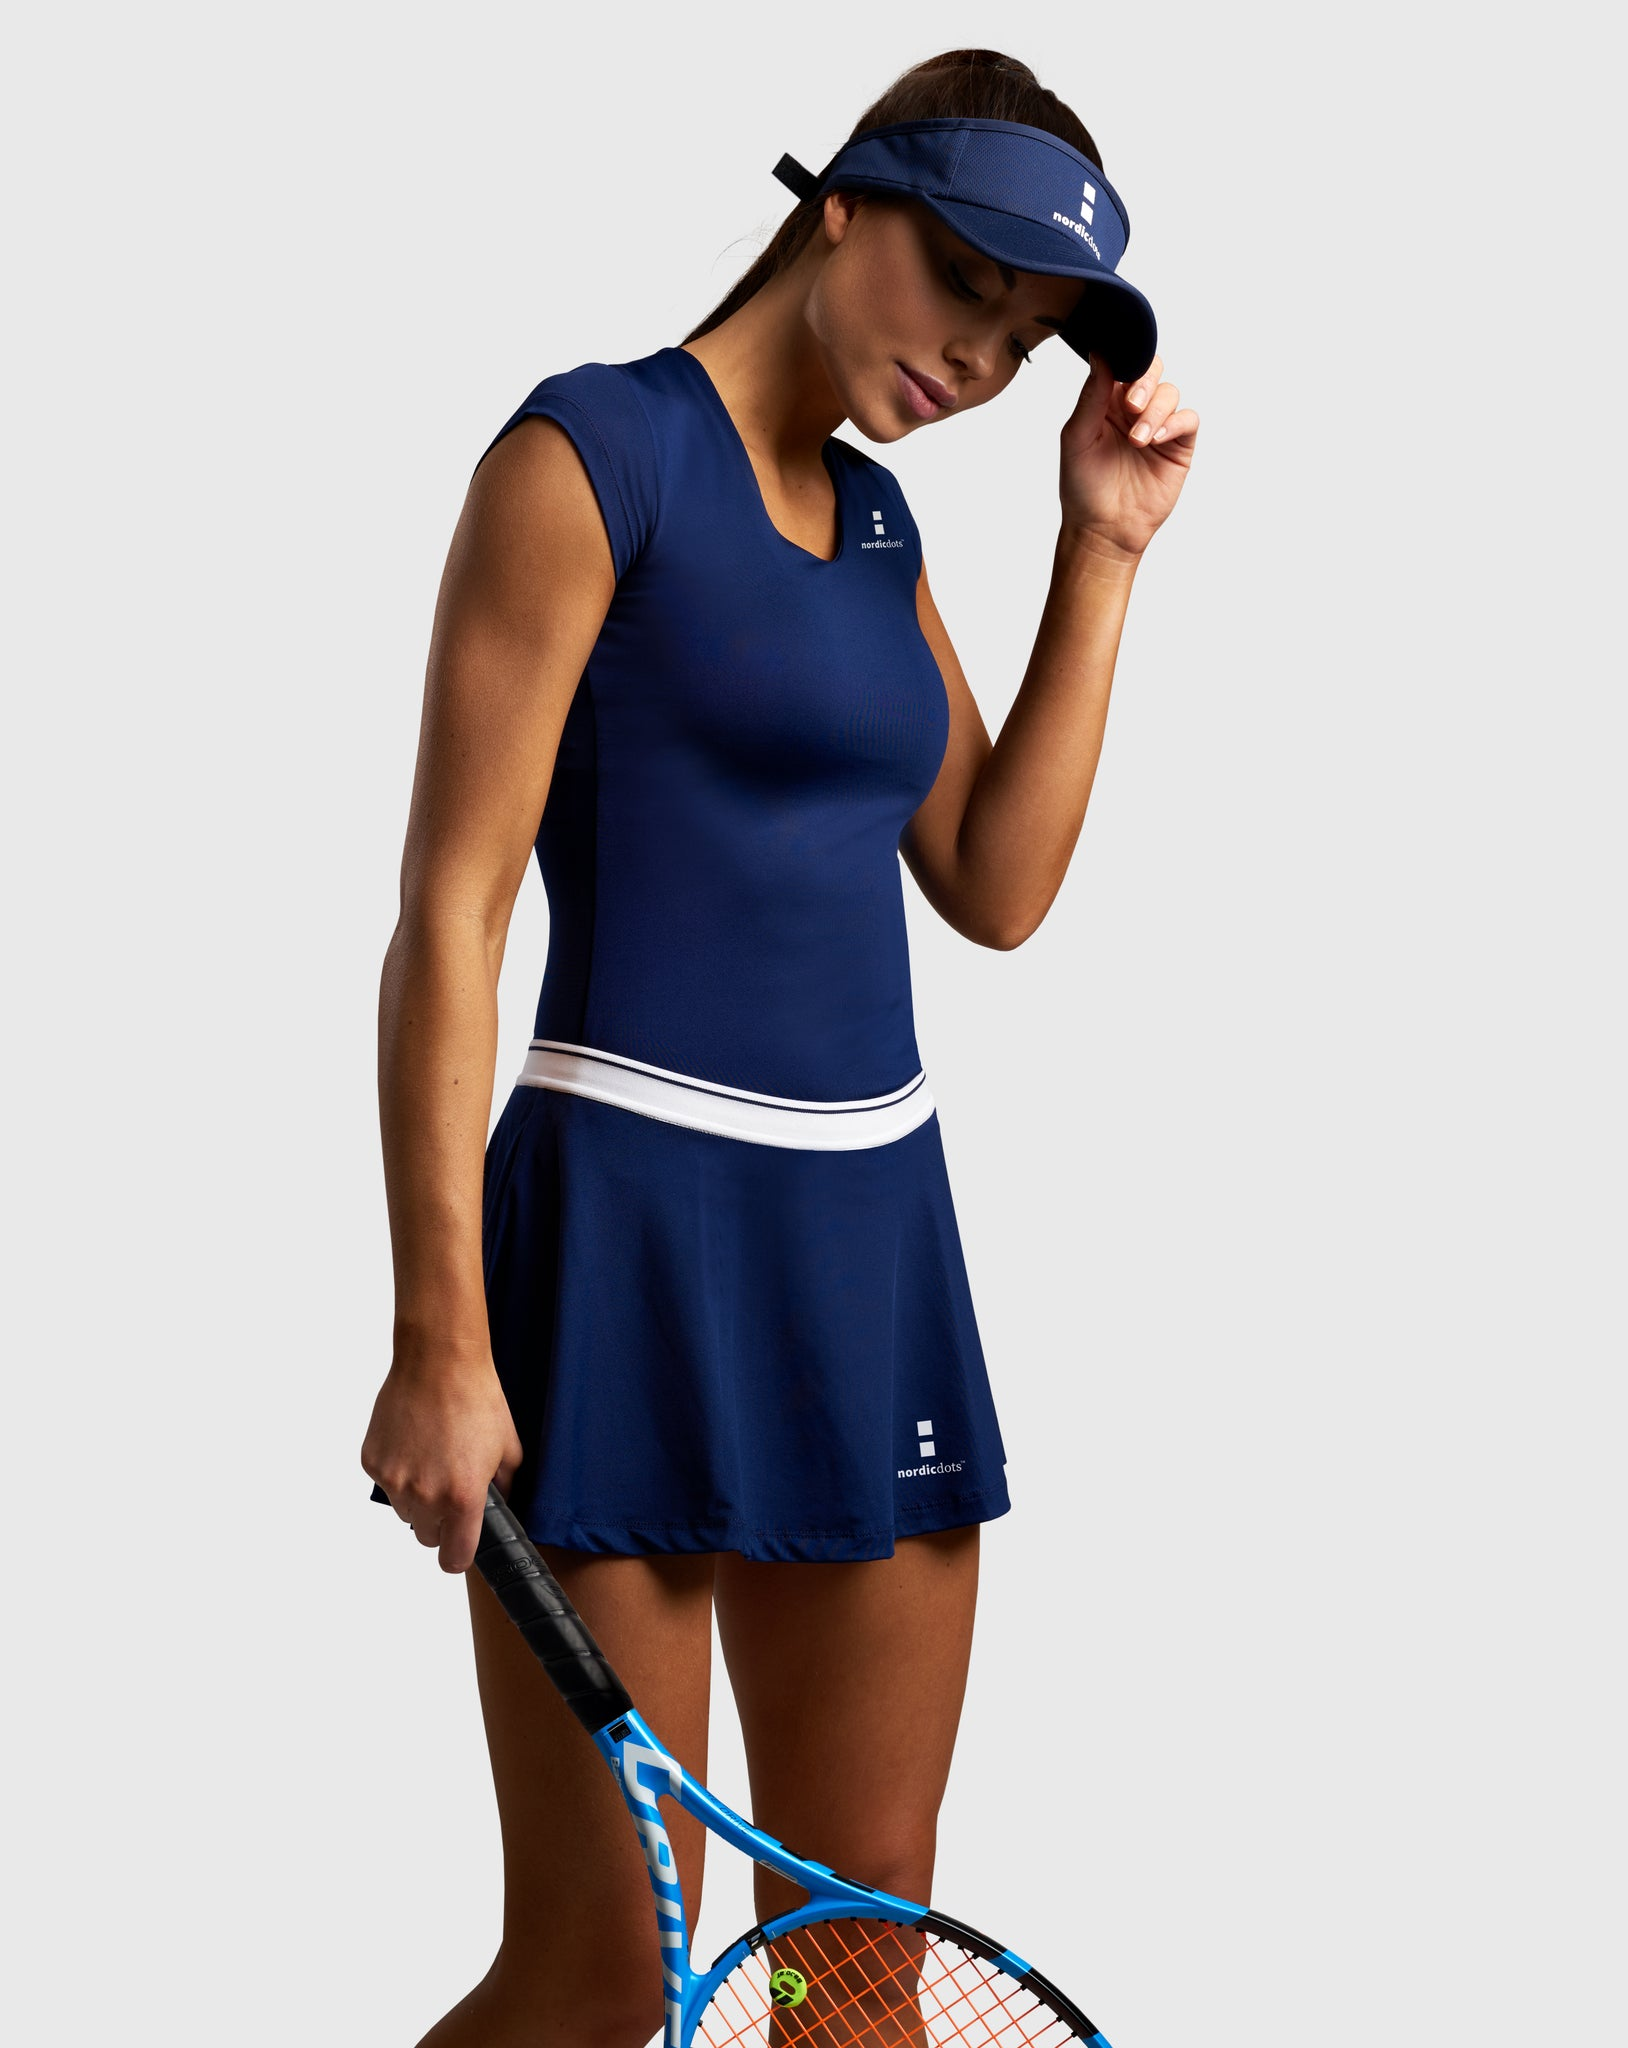 nordicdots tennis woman shop skirt t-shirt beautiful model and tennis player navy blue color